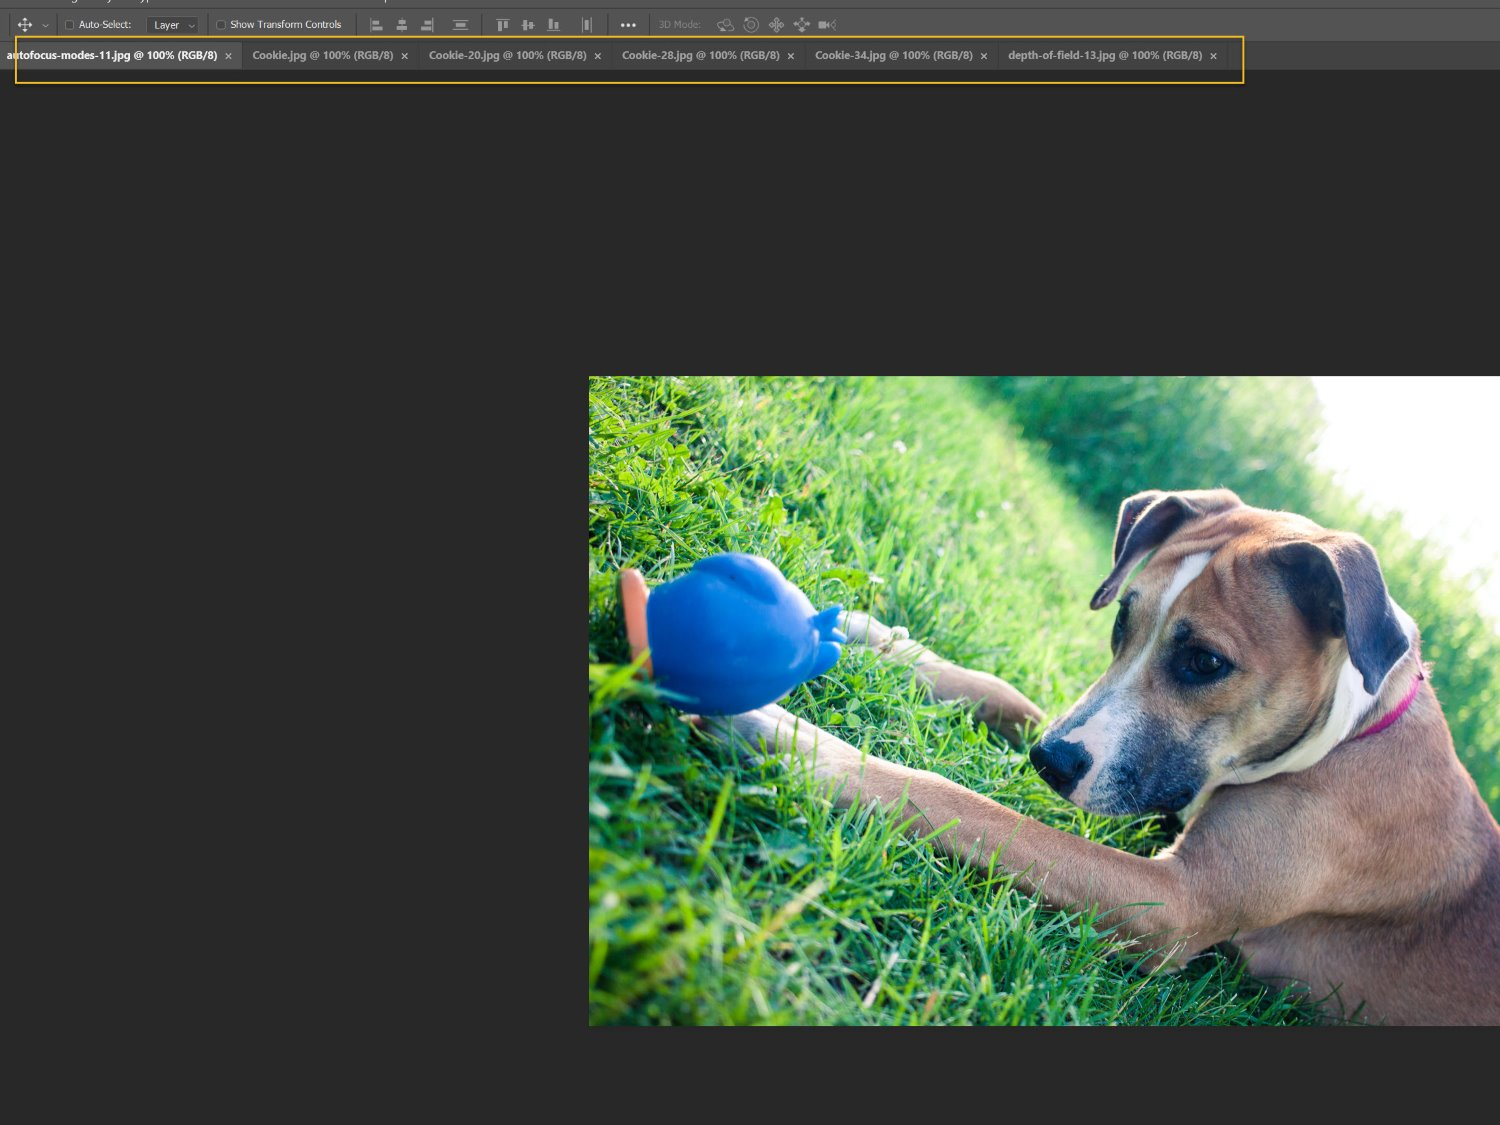 the collage images open in Photoshop